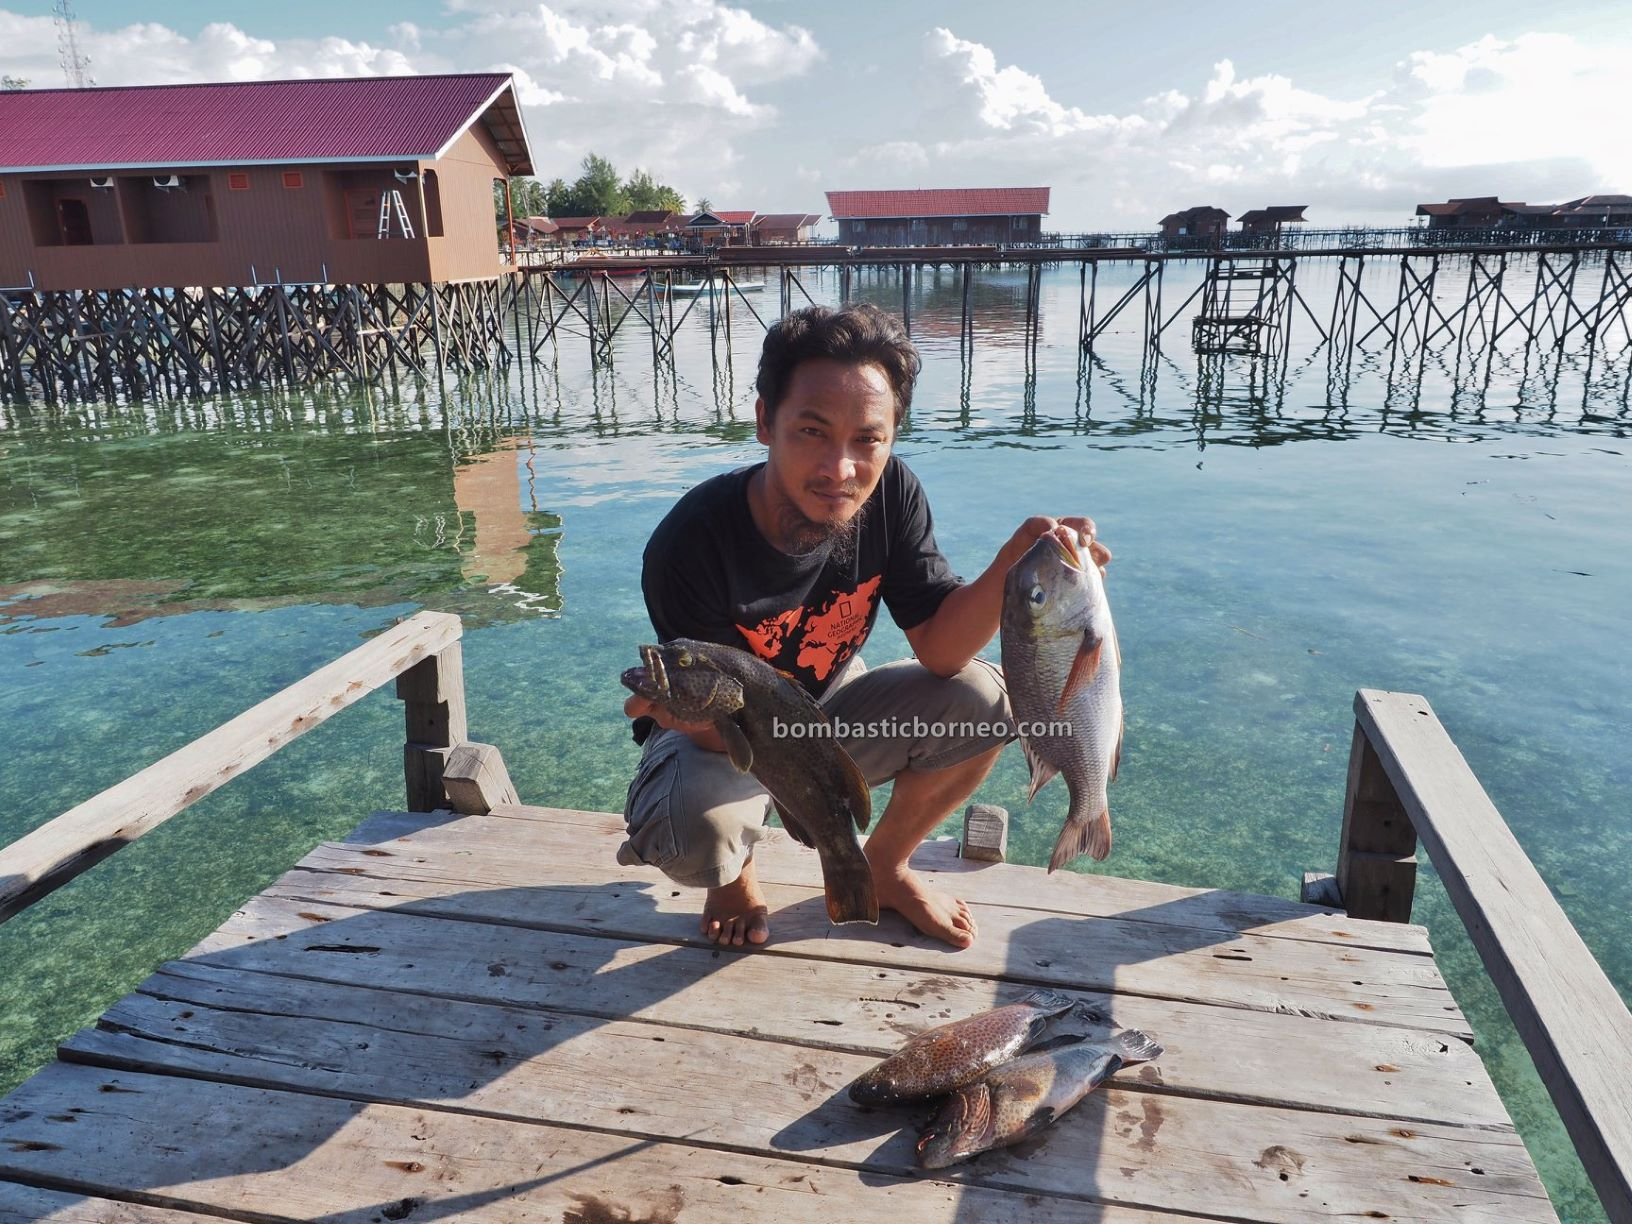 Derawan Archipelago, backpackers, Destination, diving spot, hidden paradise, holiday, vacation, Kalimantan Timur, Sulawesi Sea, wisata alam, tourist attraction, Cross Border, Borneo, 印尼东加里曼丹, 达拉湾岛旅游景点